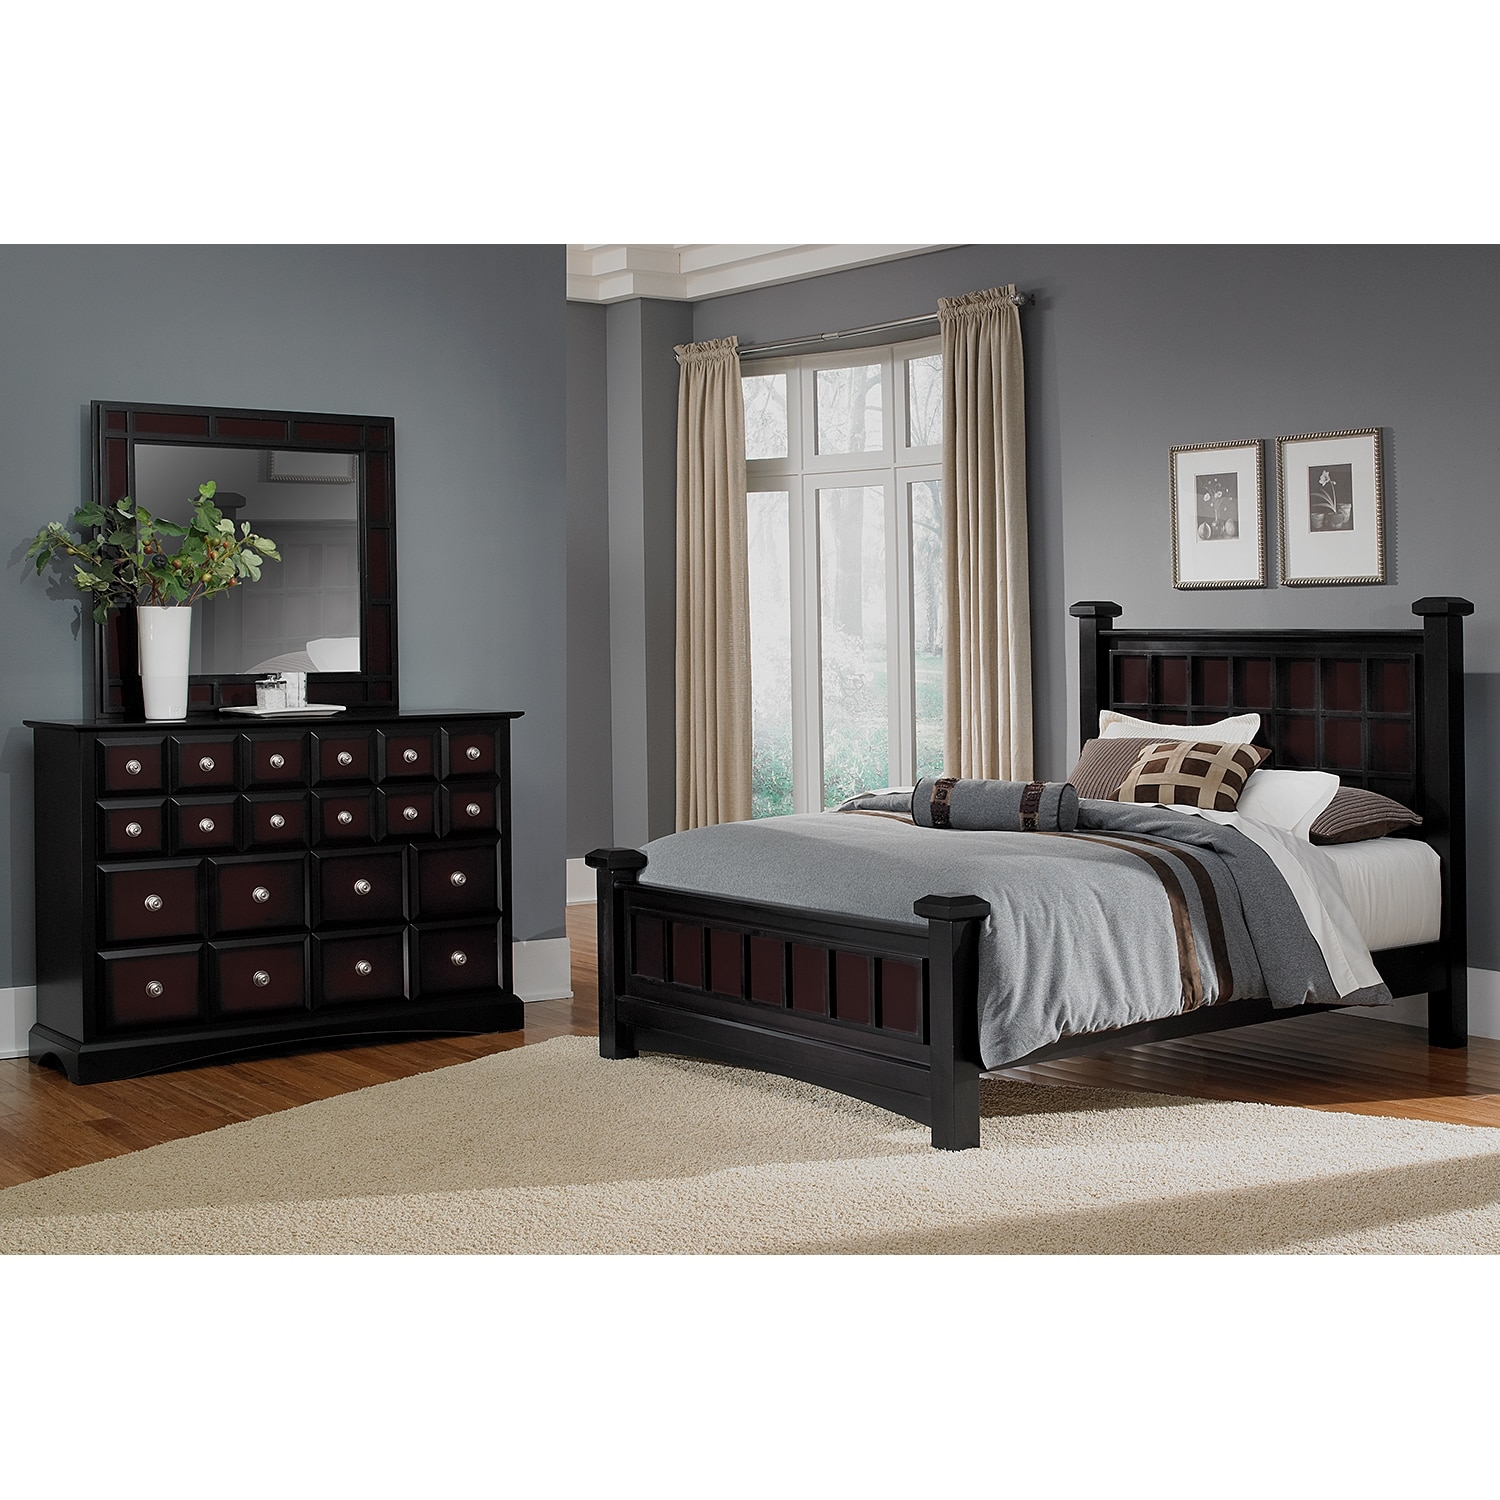 Winchester 5 piece king bedroom set black and burnished for Where to get bedroom furniture